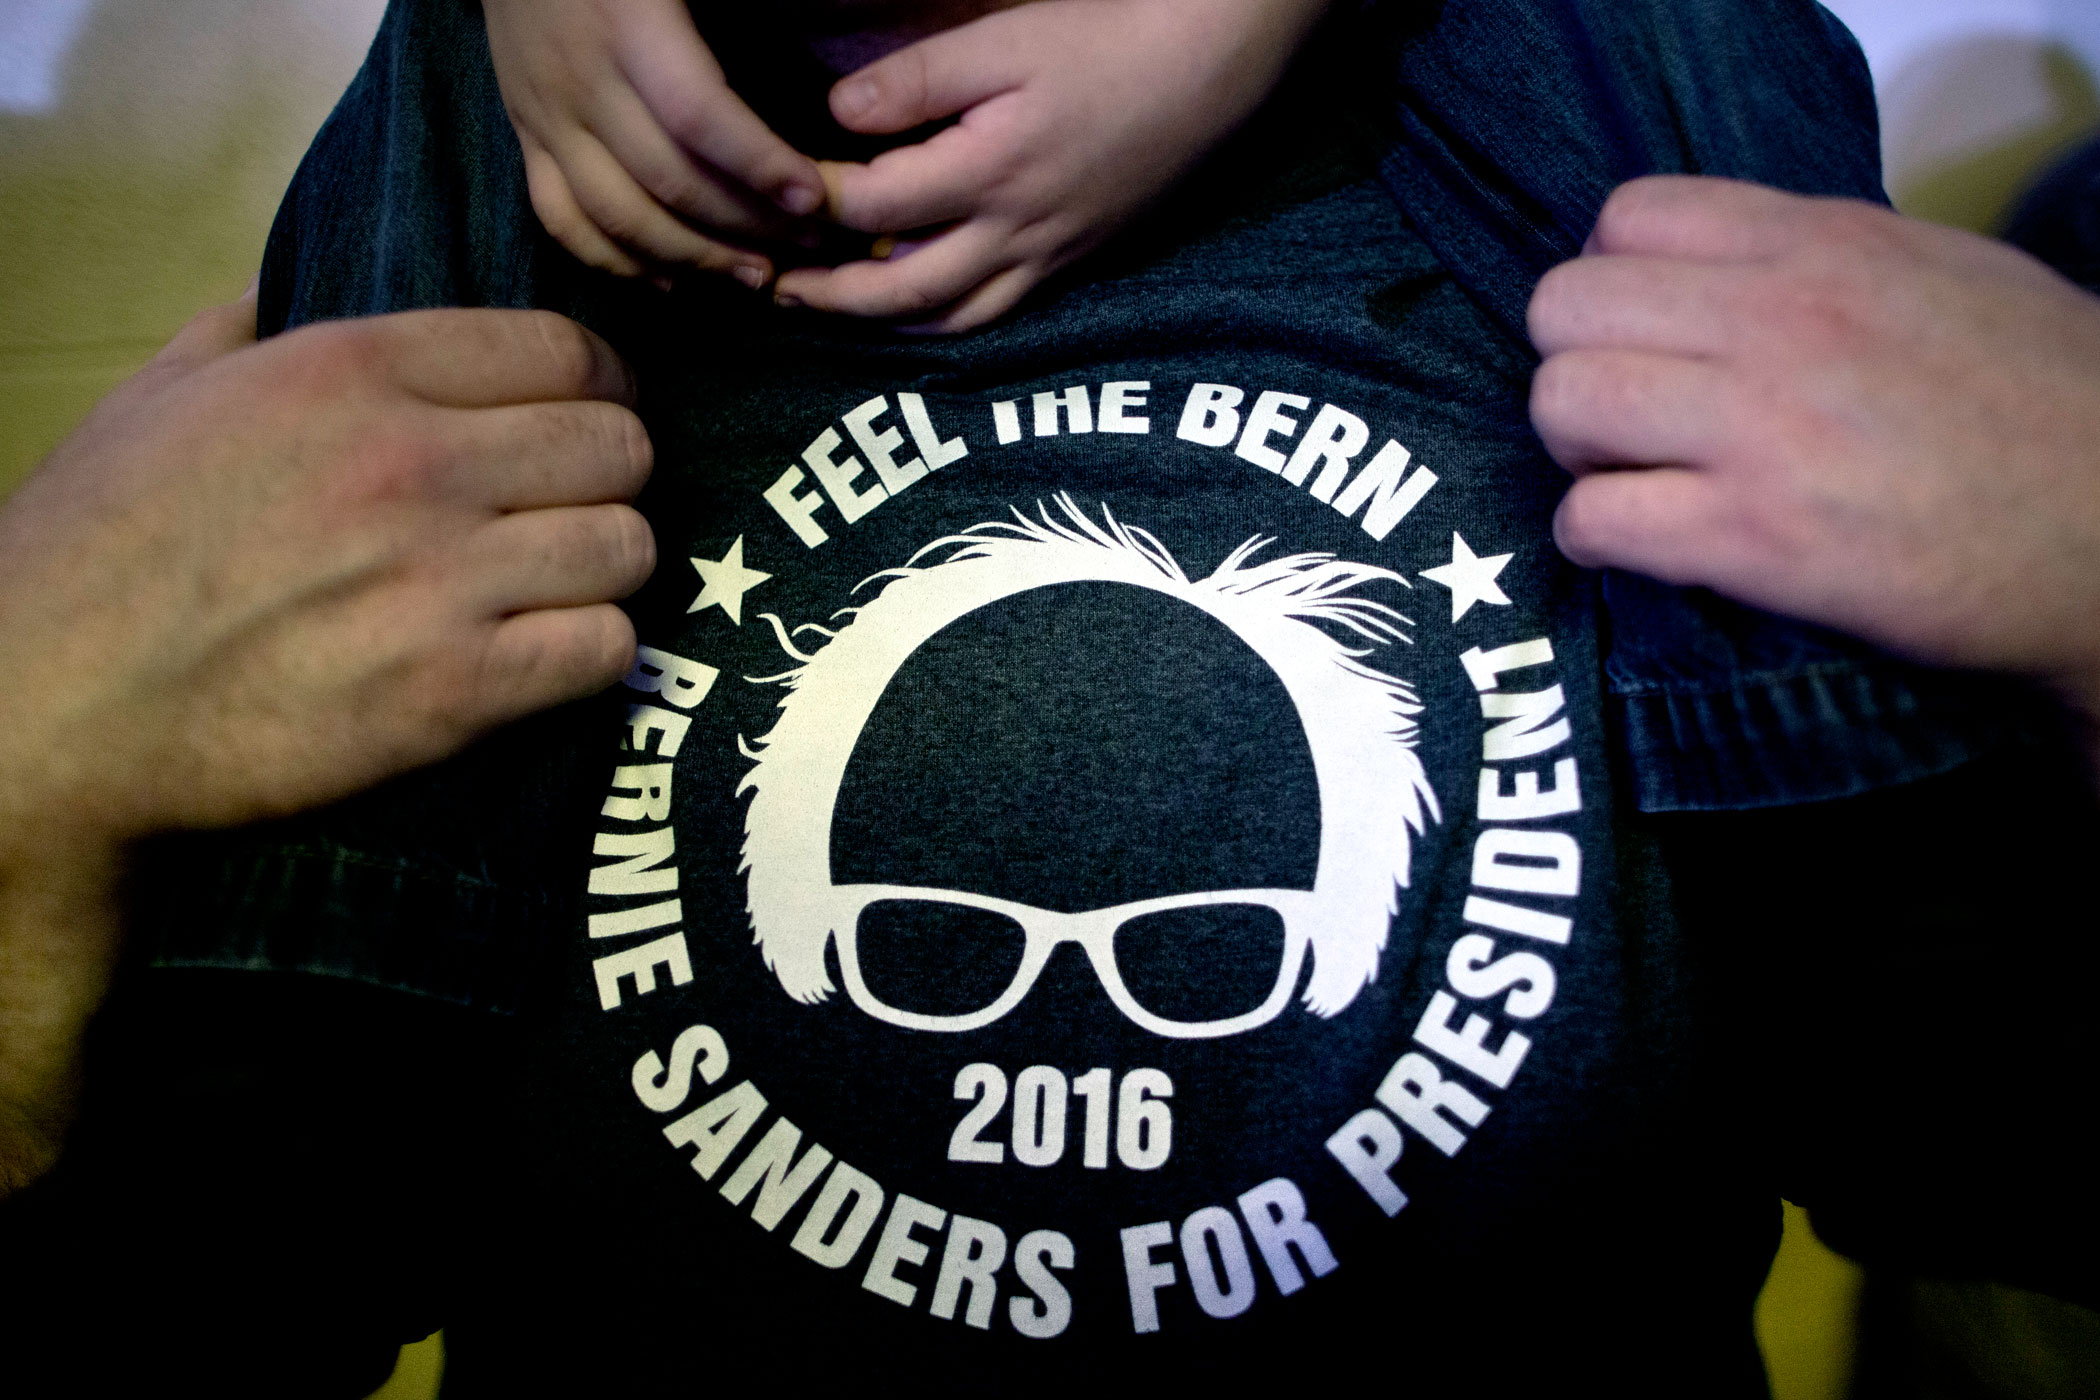 A man wears a shirt supporting Sen. Bernie Sanders, I-Vt., at a campaign event on Jan. in Clinton, Iowa.